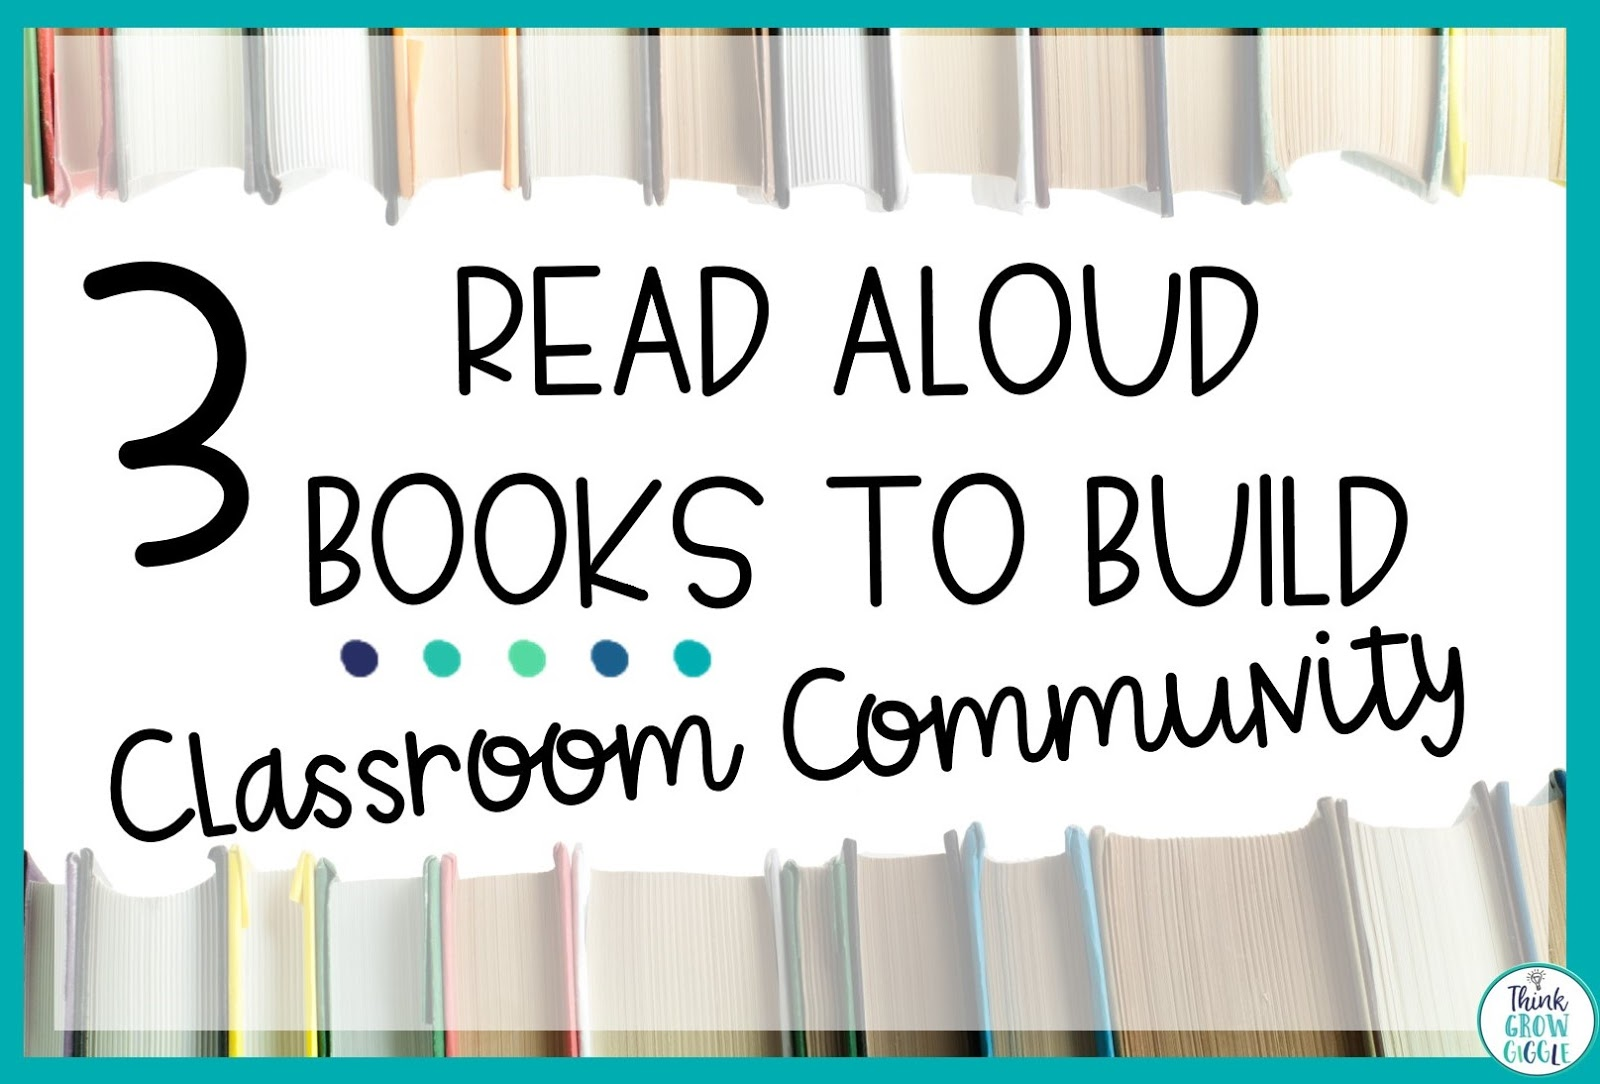 picture books to build community